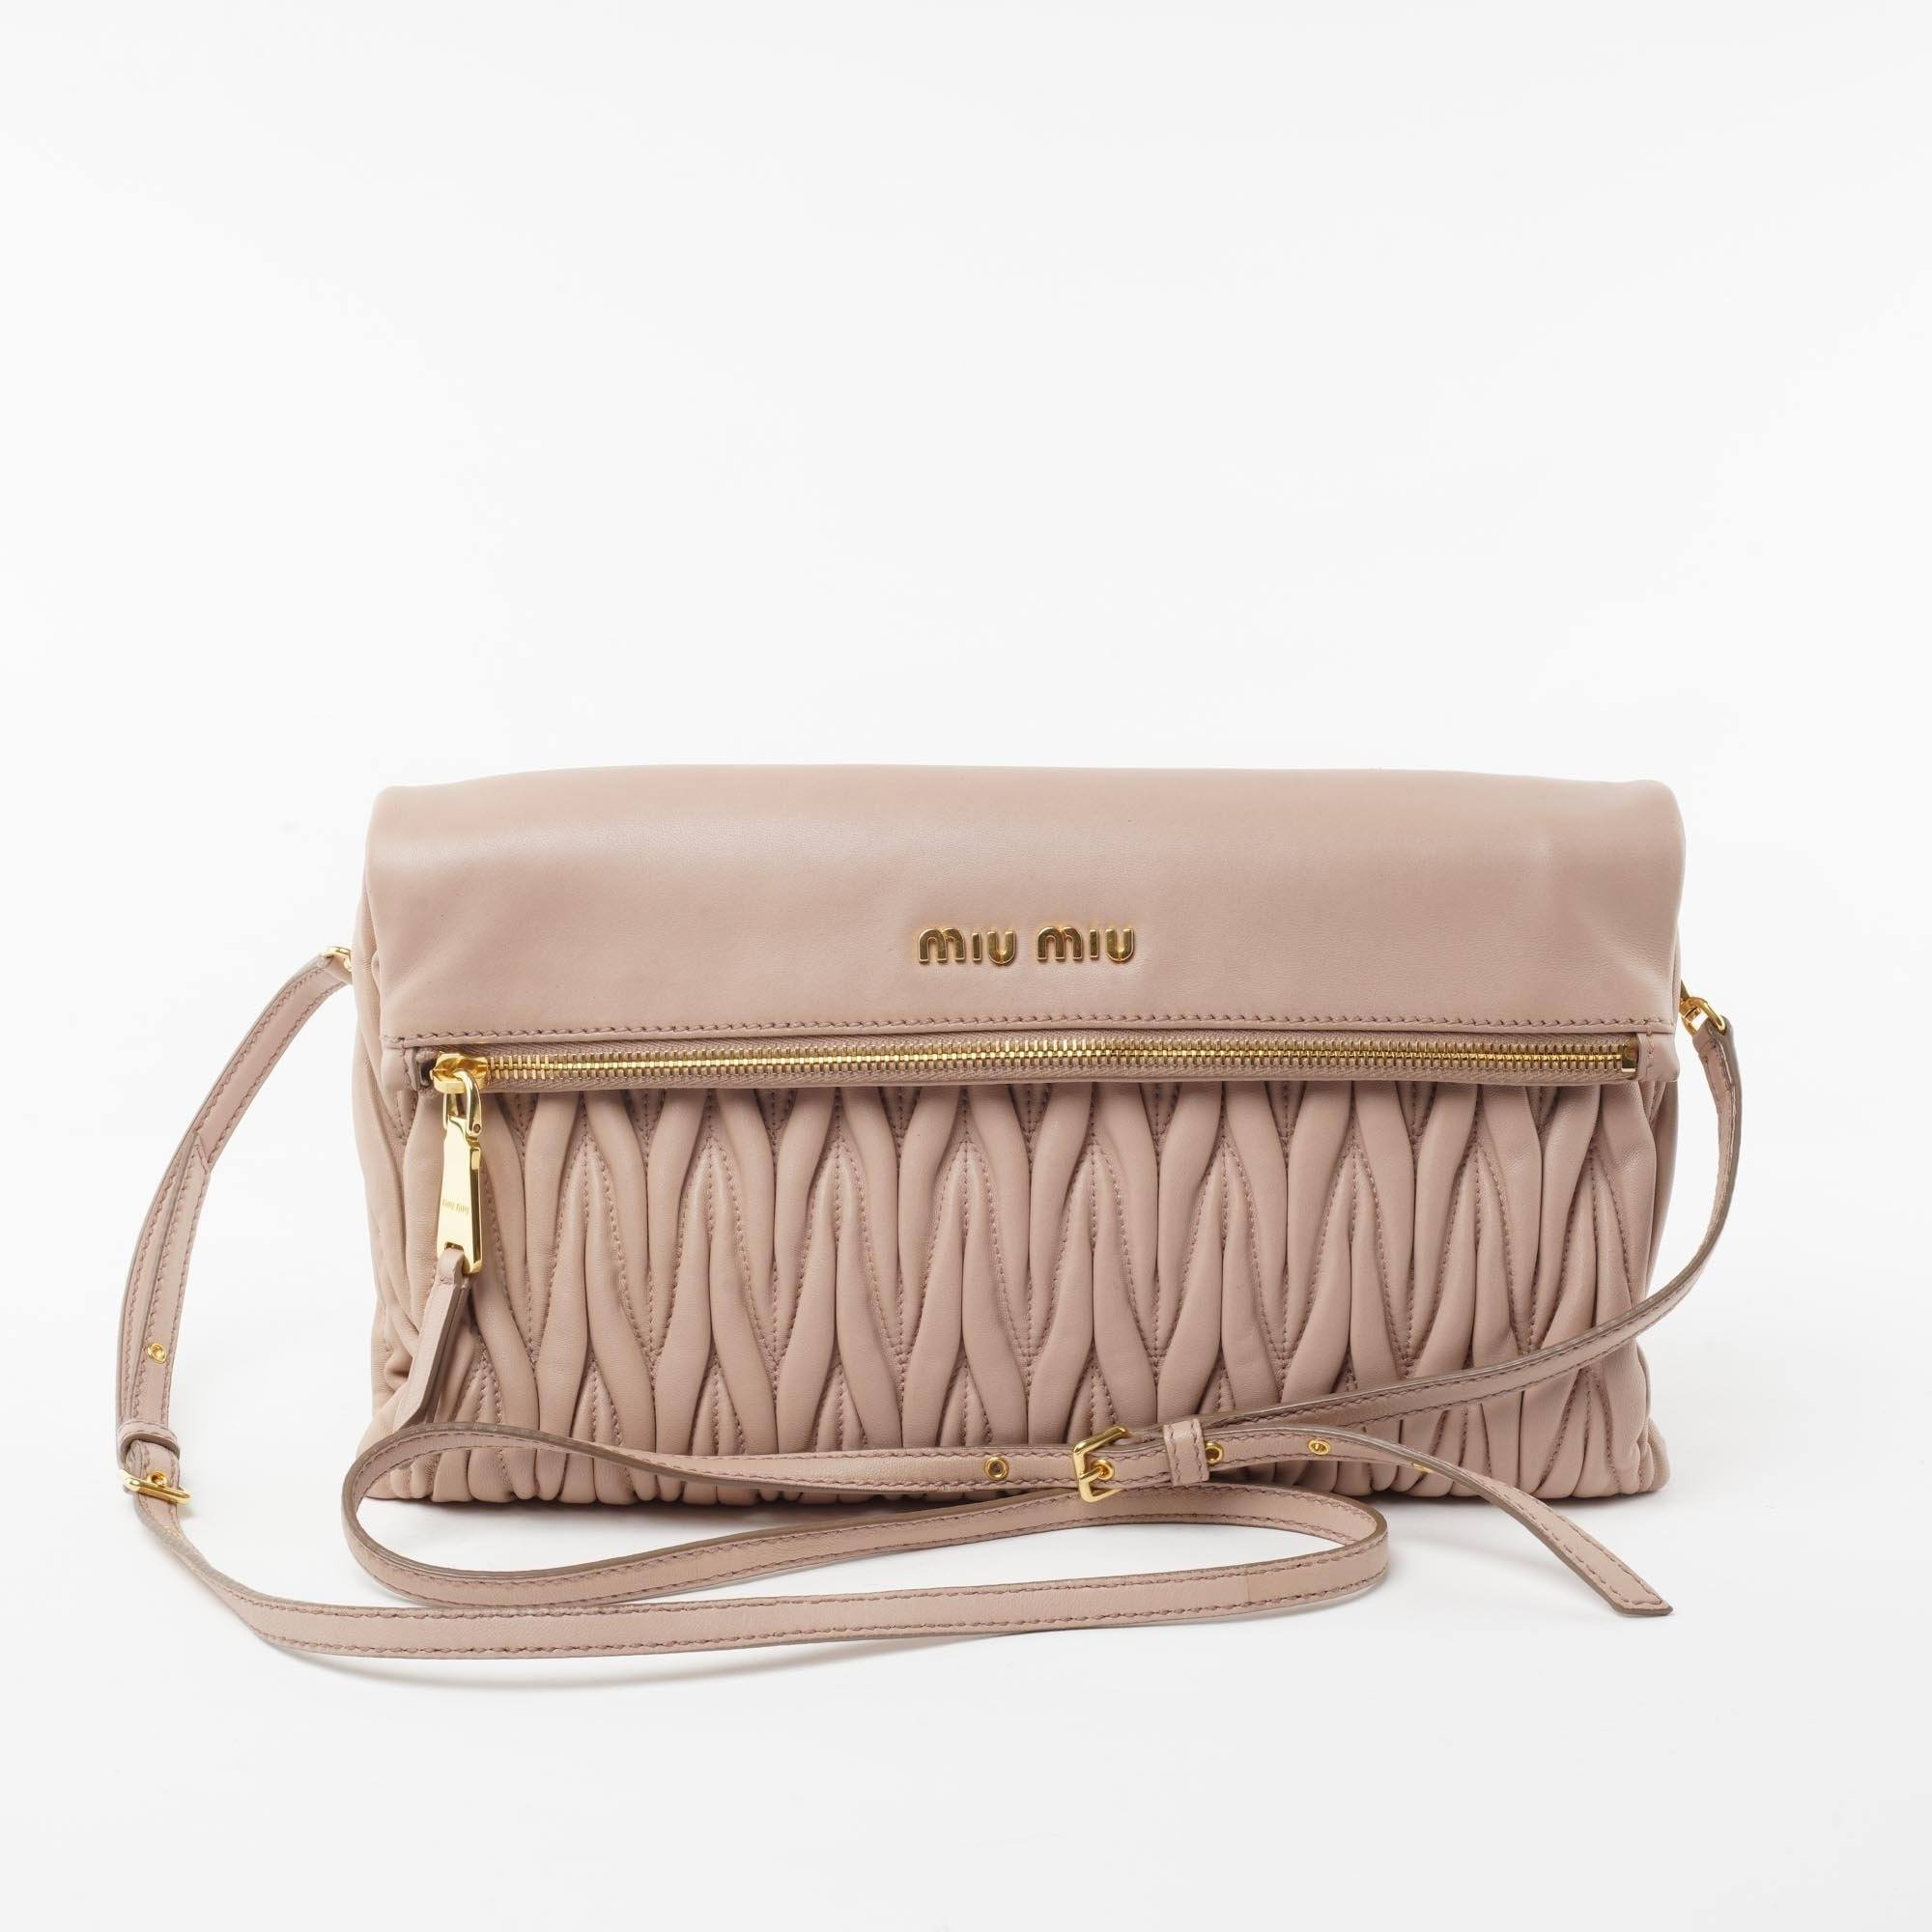 5c185e5acab Miu Miu Matelasse Leather Crossbody Bag – Garderobe